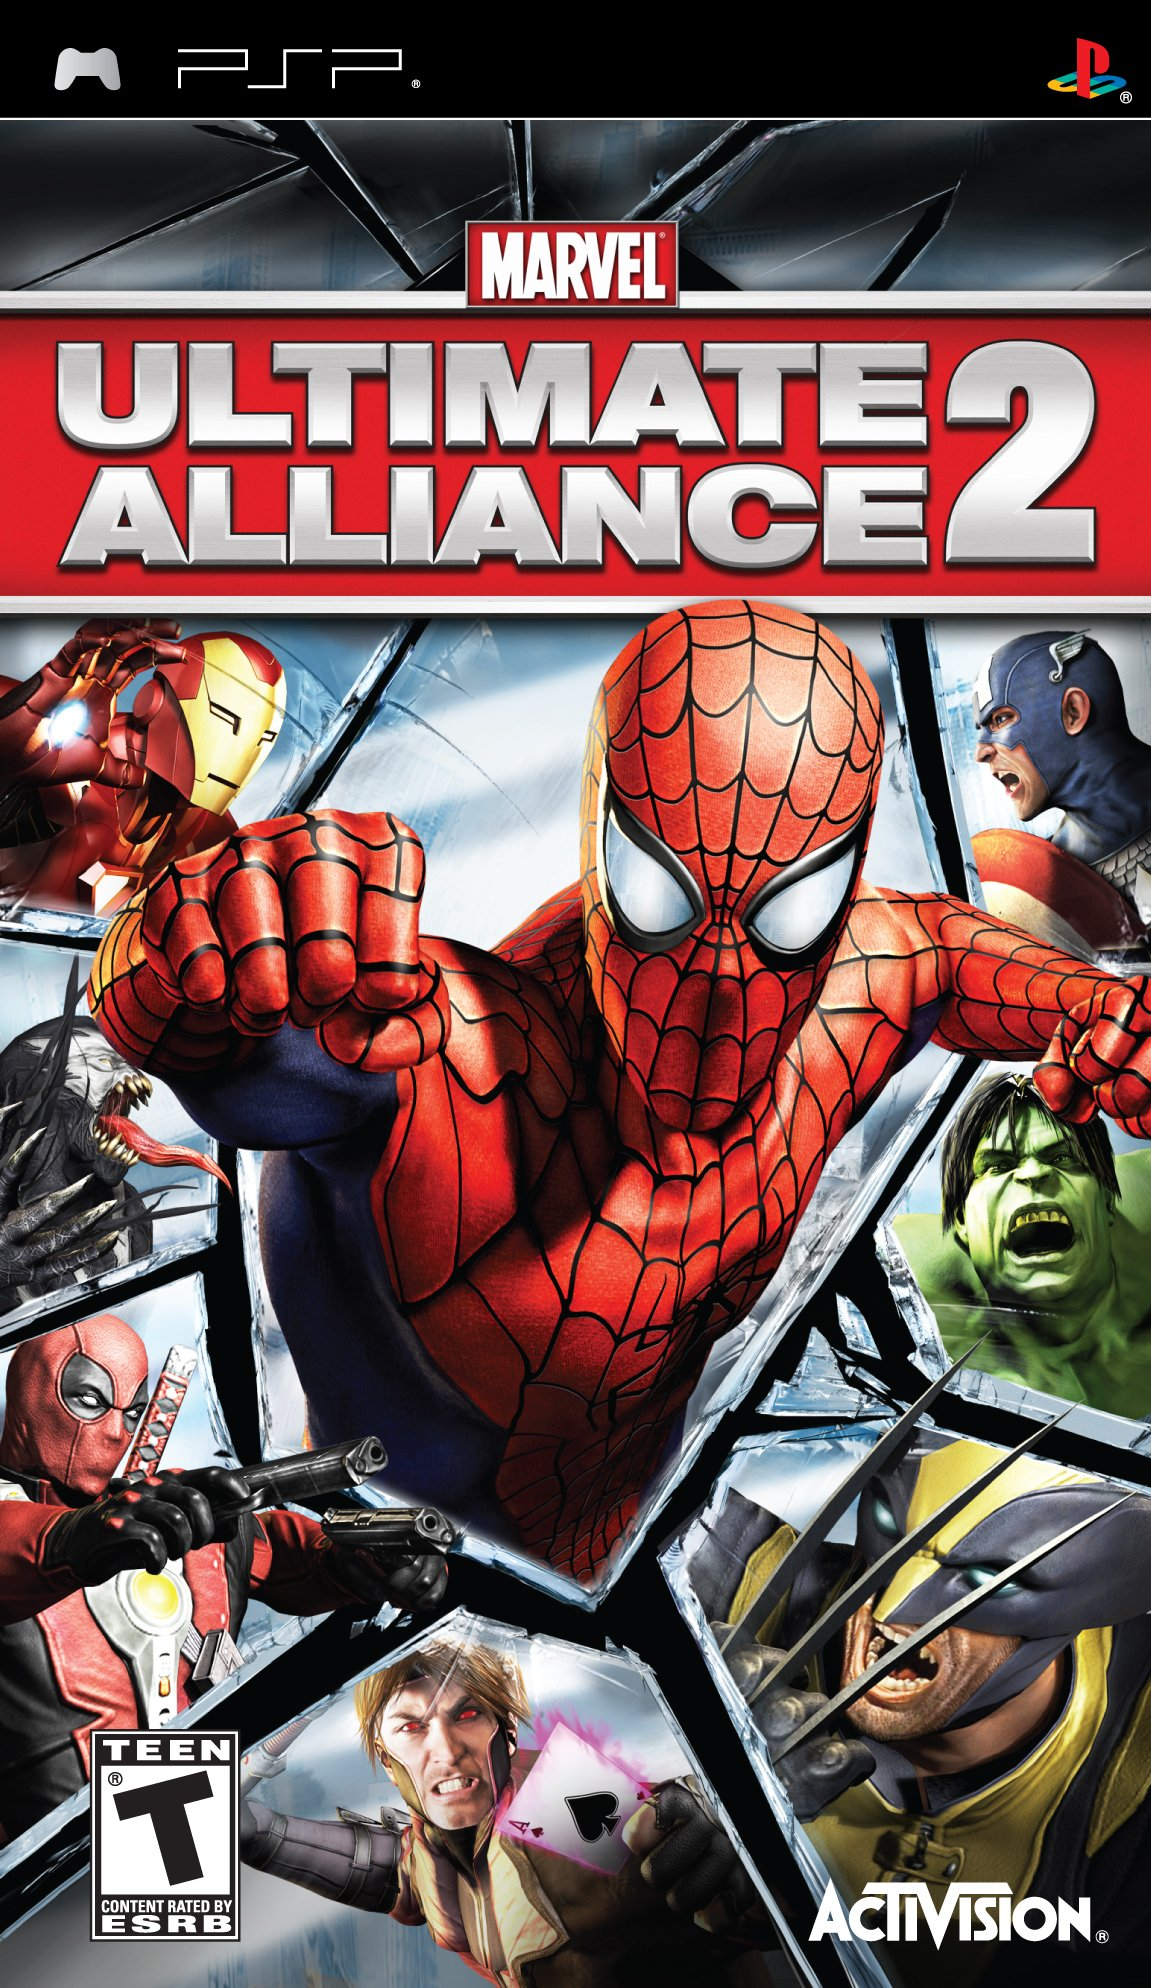 Marvel Ultimate Alliance 2 Release Date Psp Xbox 360